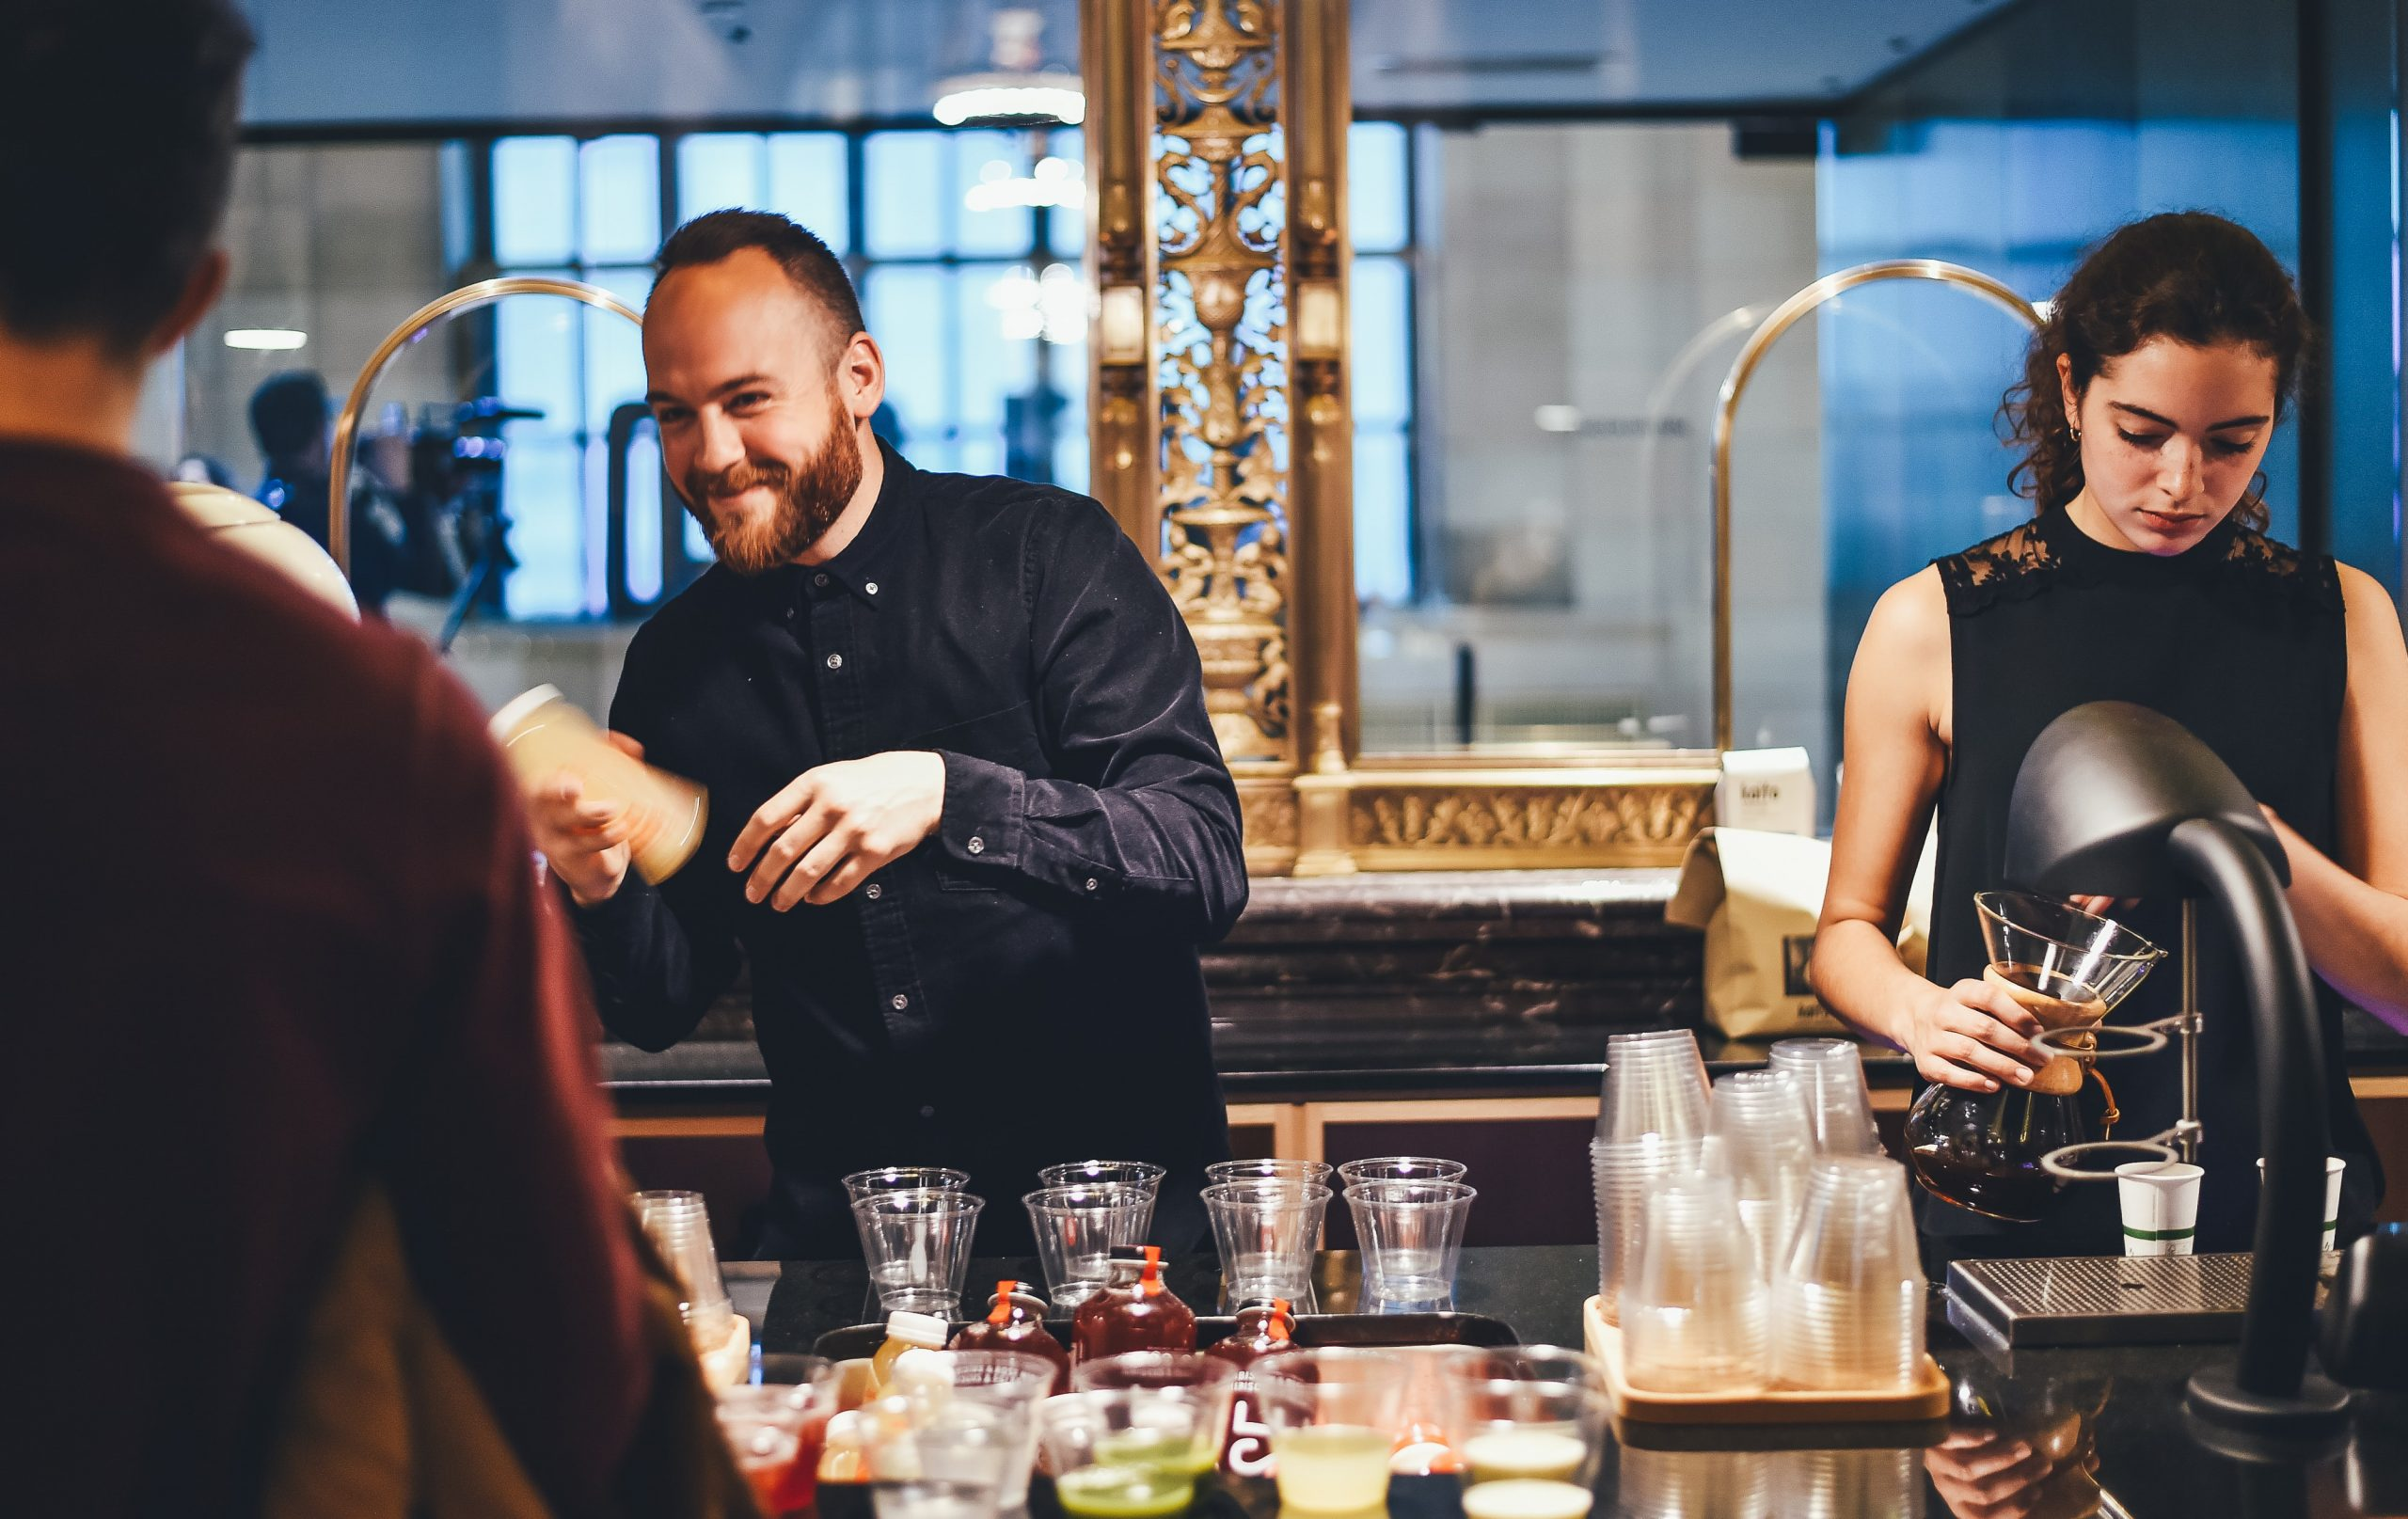 A photo of two bartenders